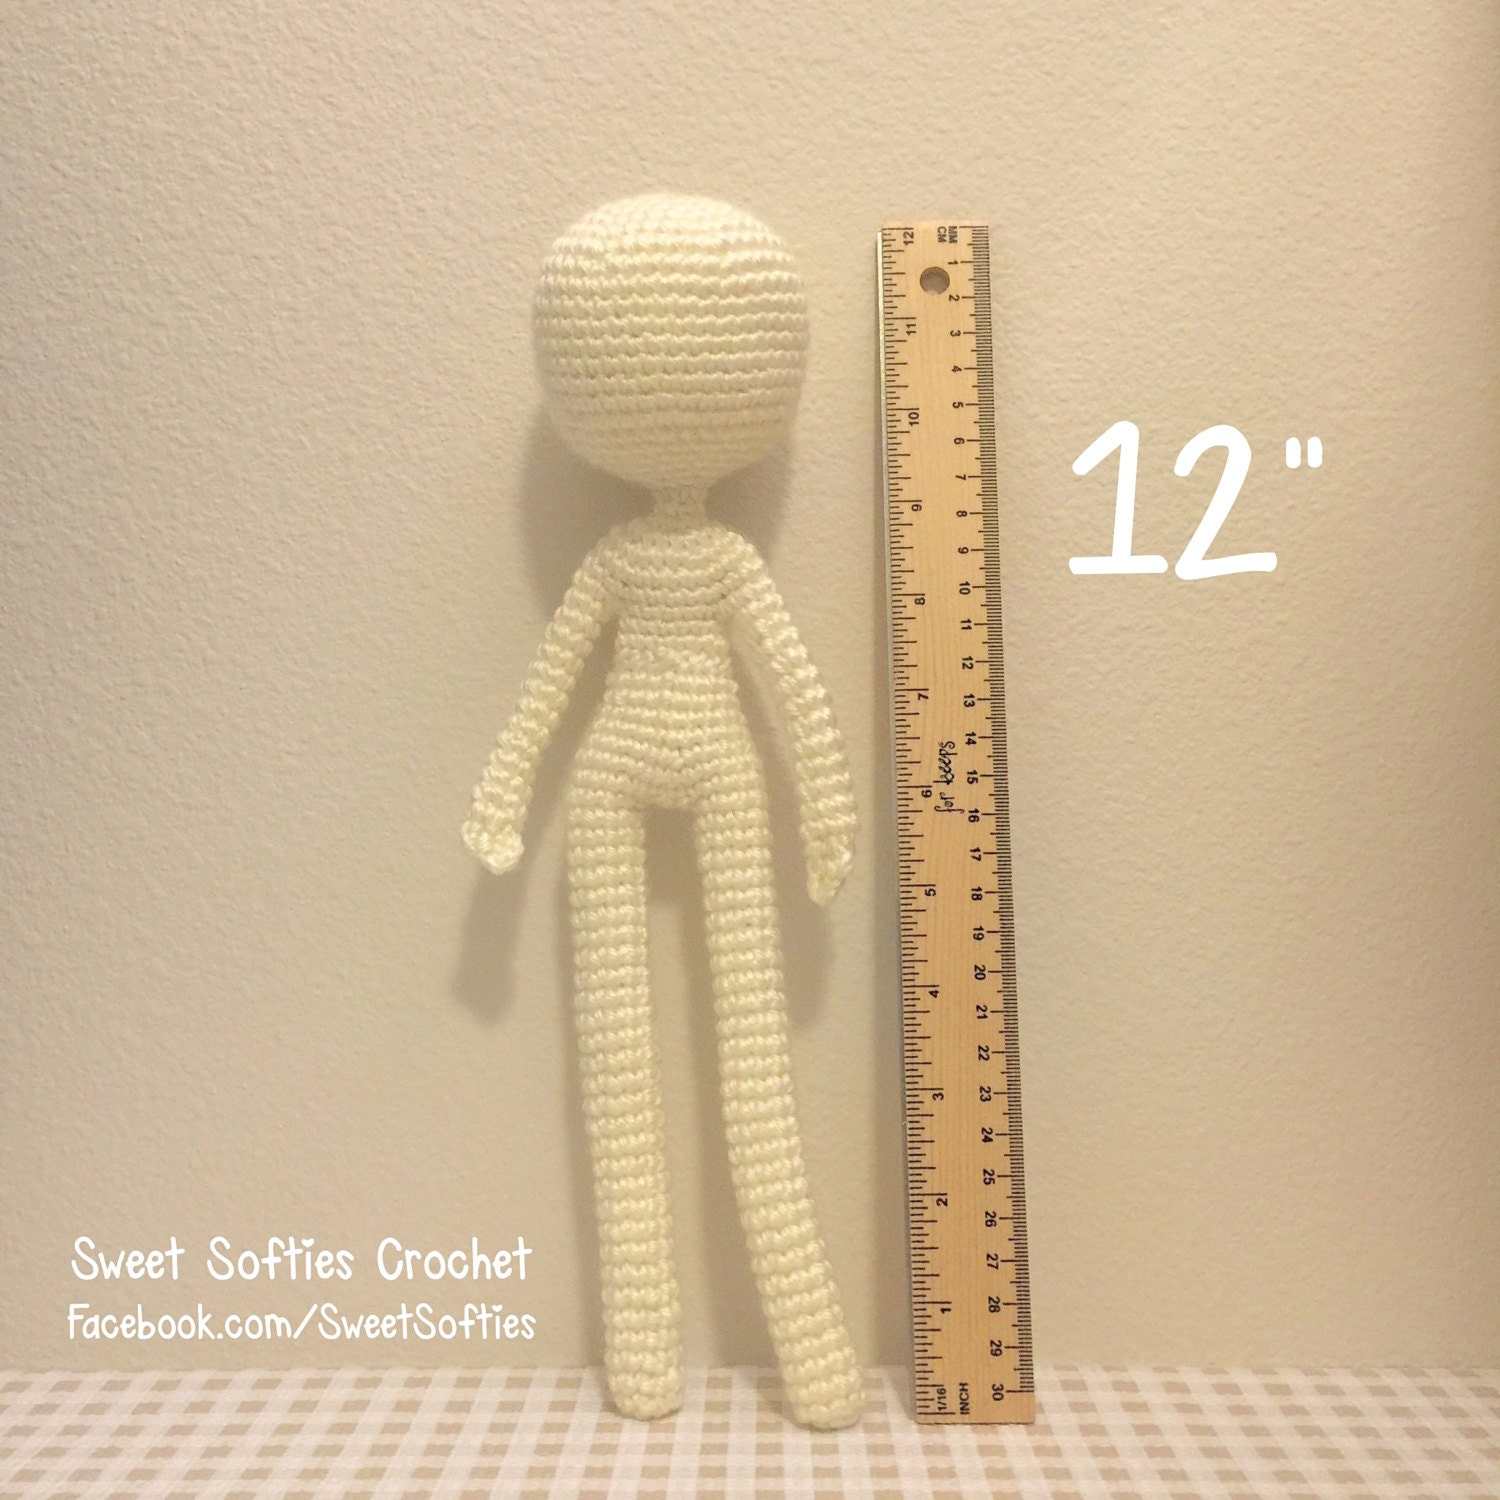 Crochet Pattern Human Doll : 12 Slender Doll Base Amigurumi Crochet Pattern for by Sylemn